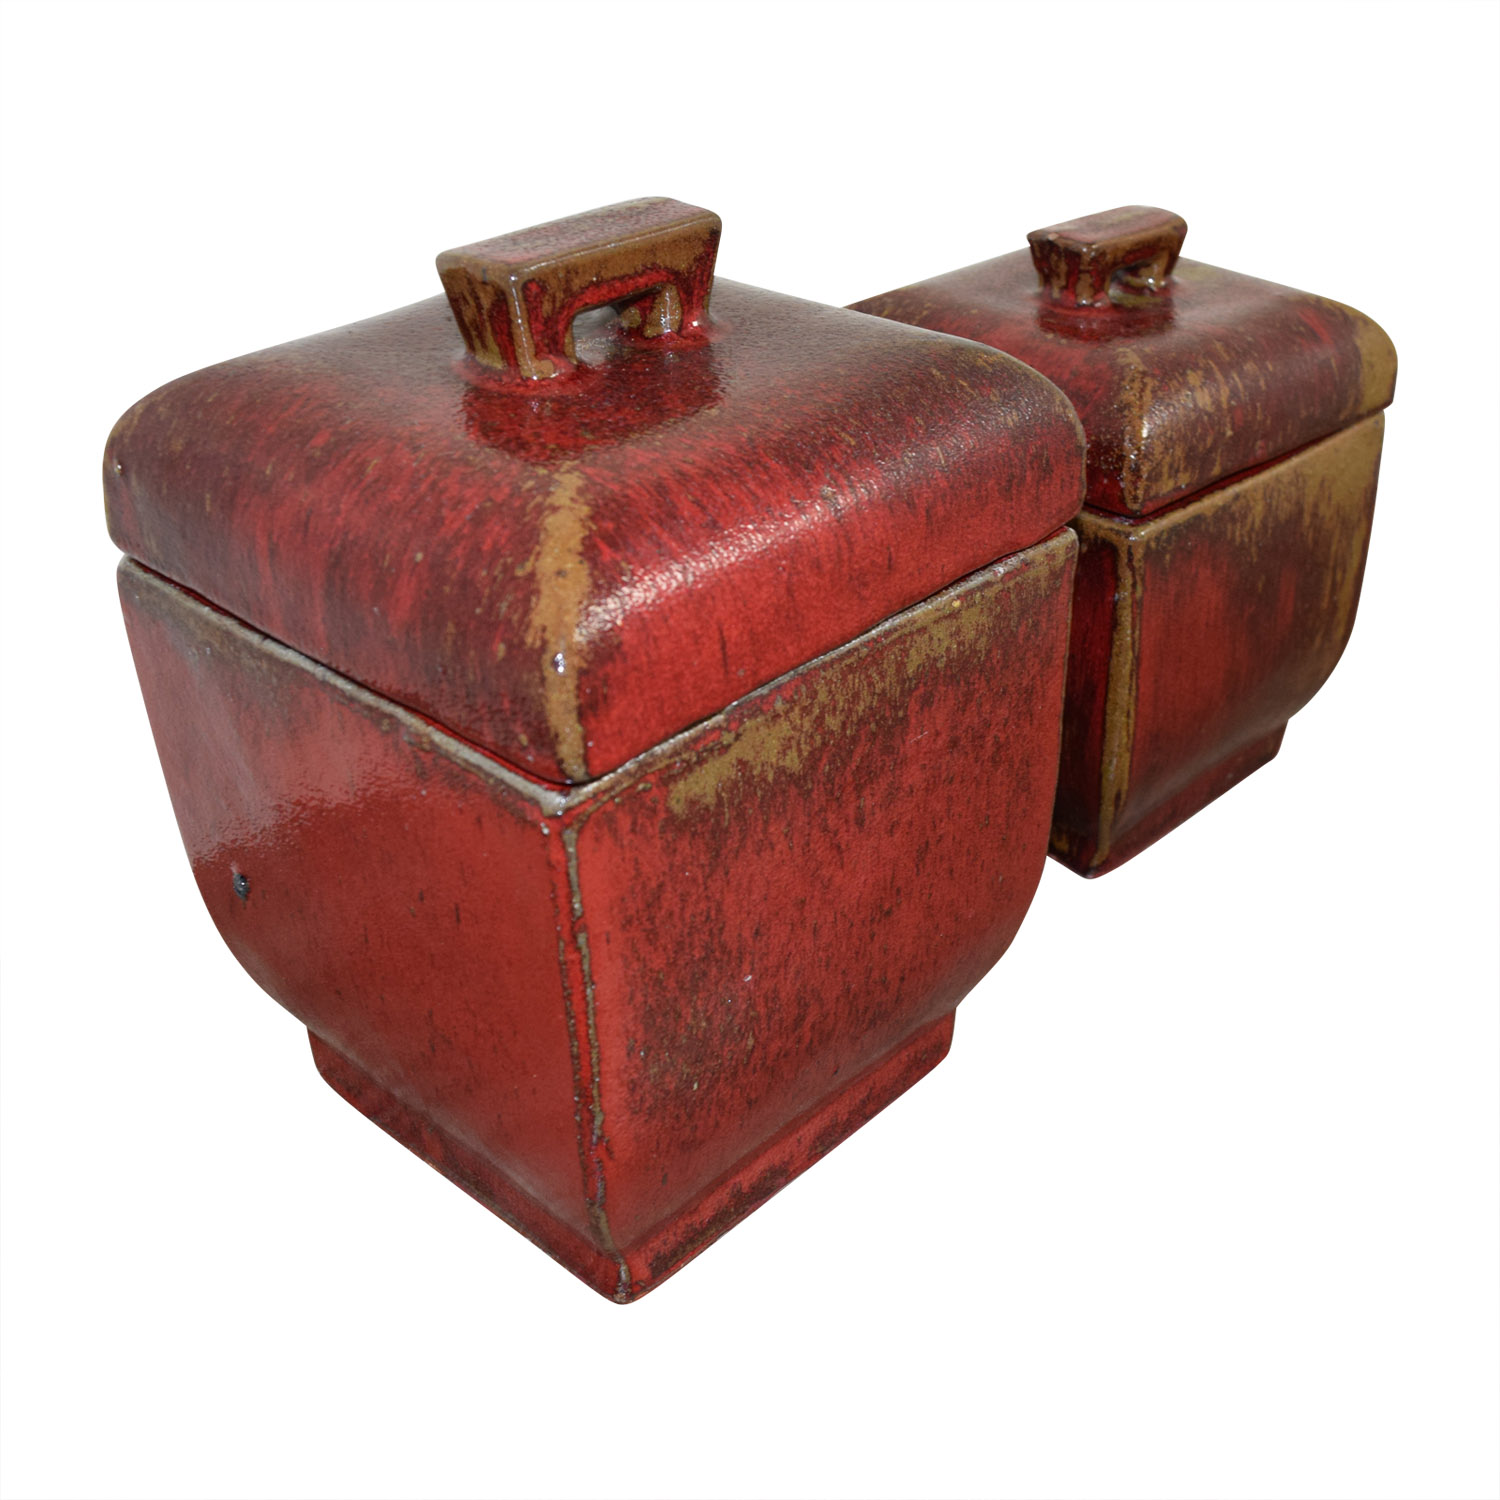 Red Ceramic Canisters nj